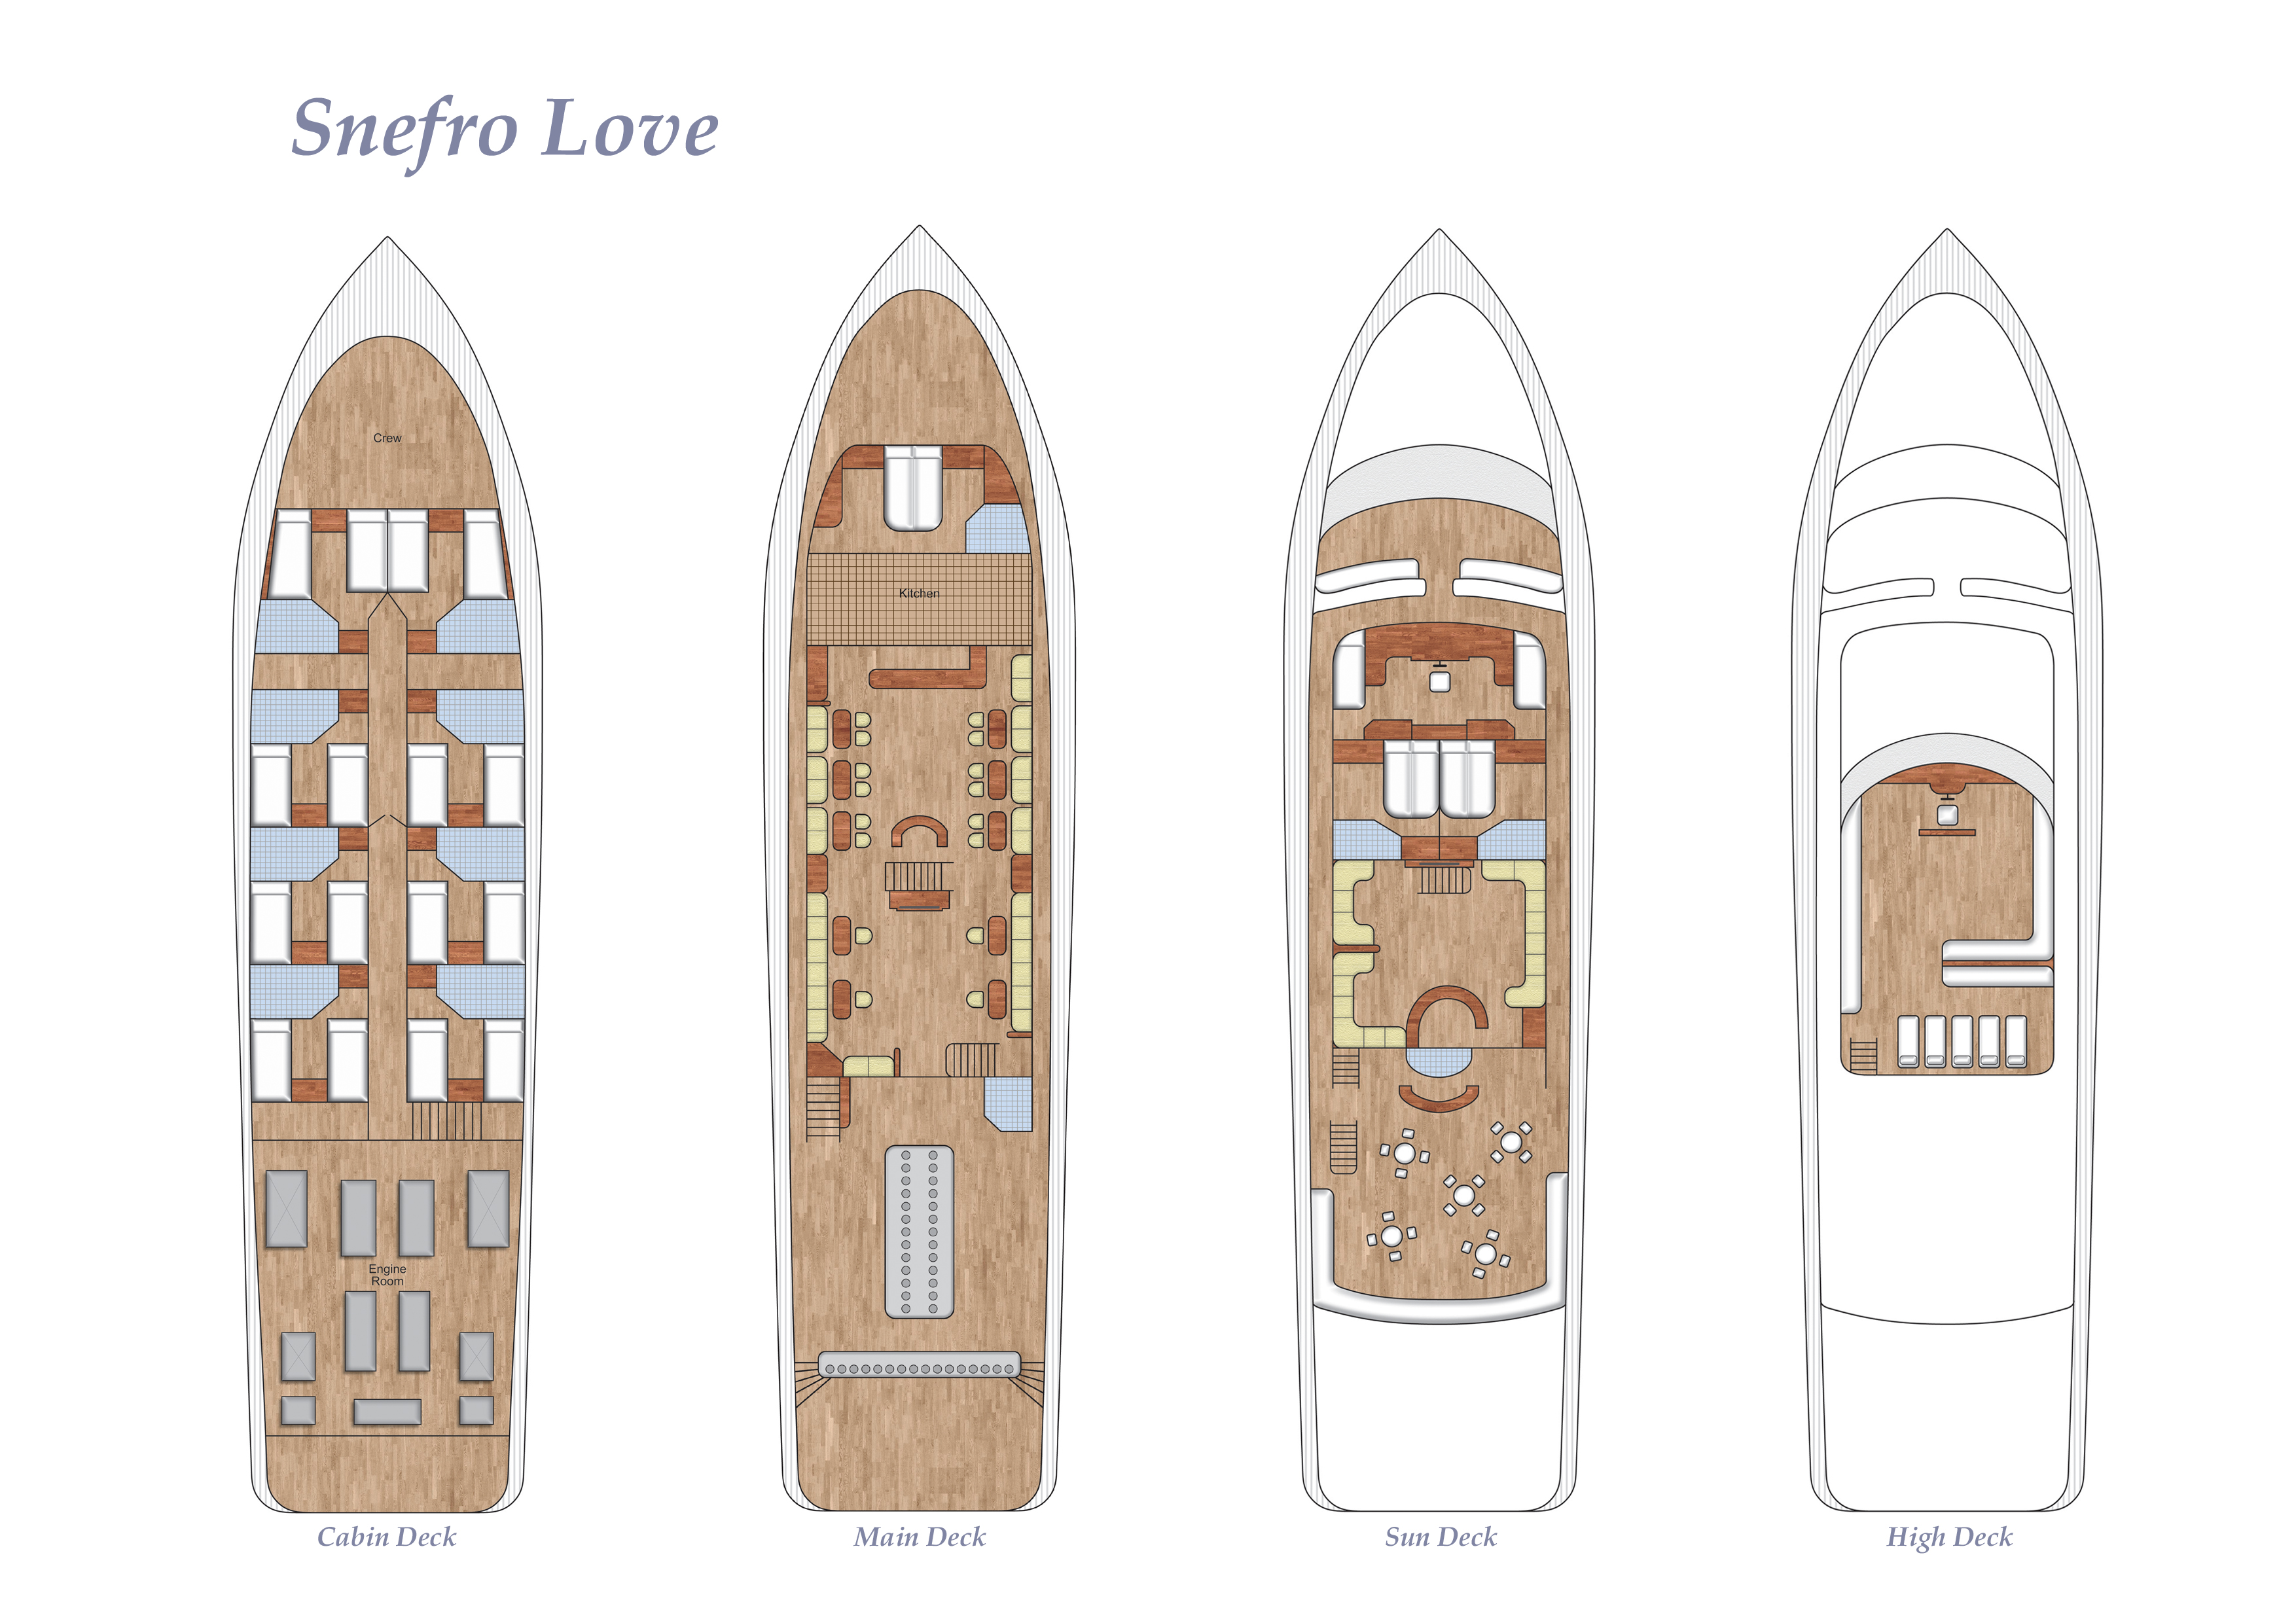 Deck Plan - Snefro Love floorplan